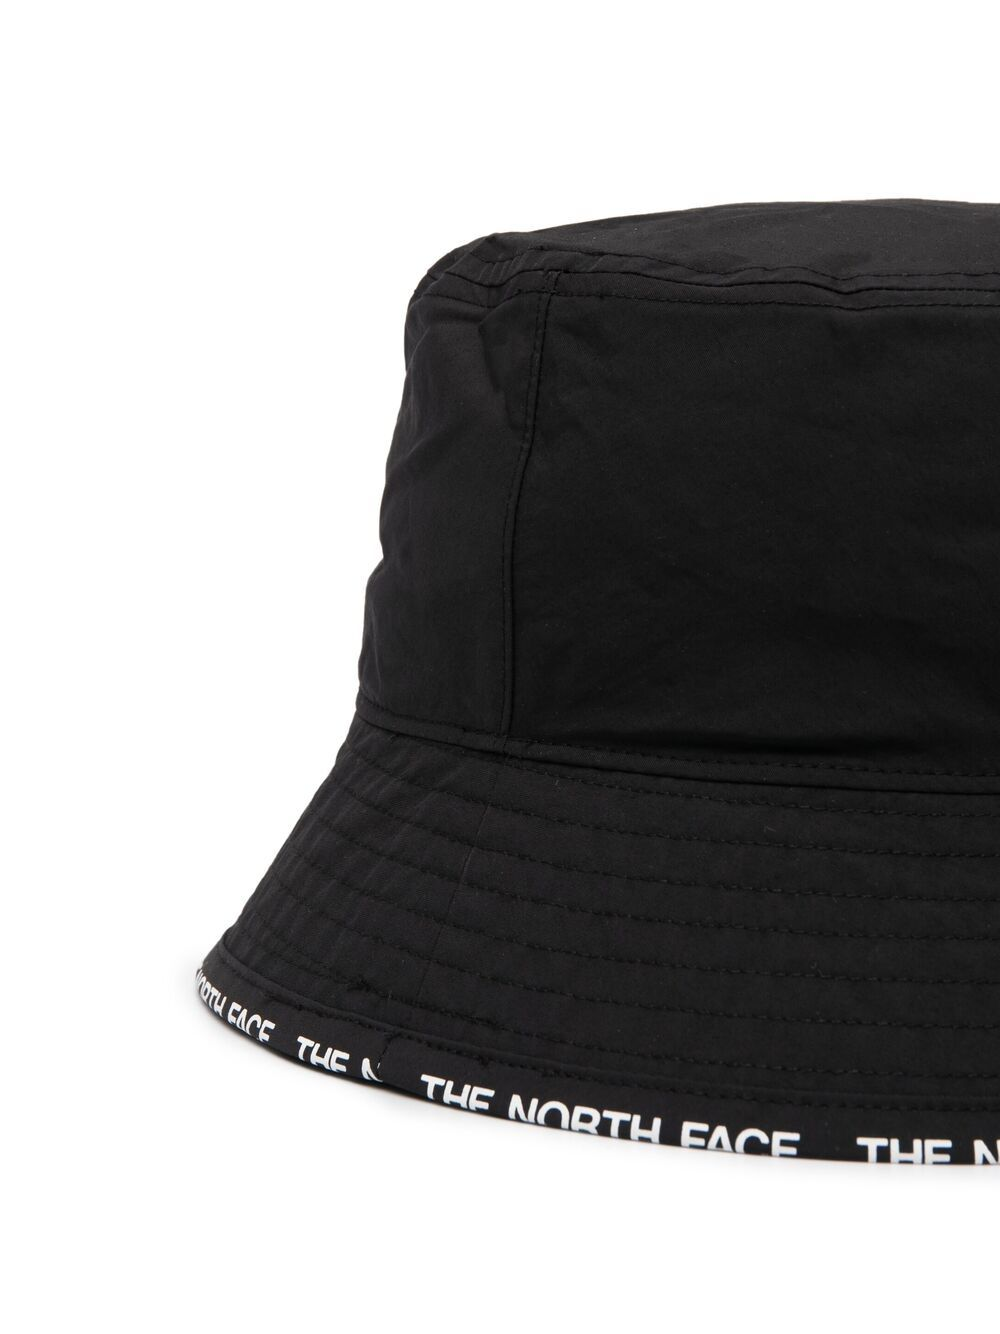 The North Face logo hat man black THE NORTH FACE | Hats | NF0A3VVKJK31